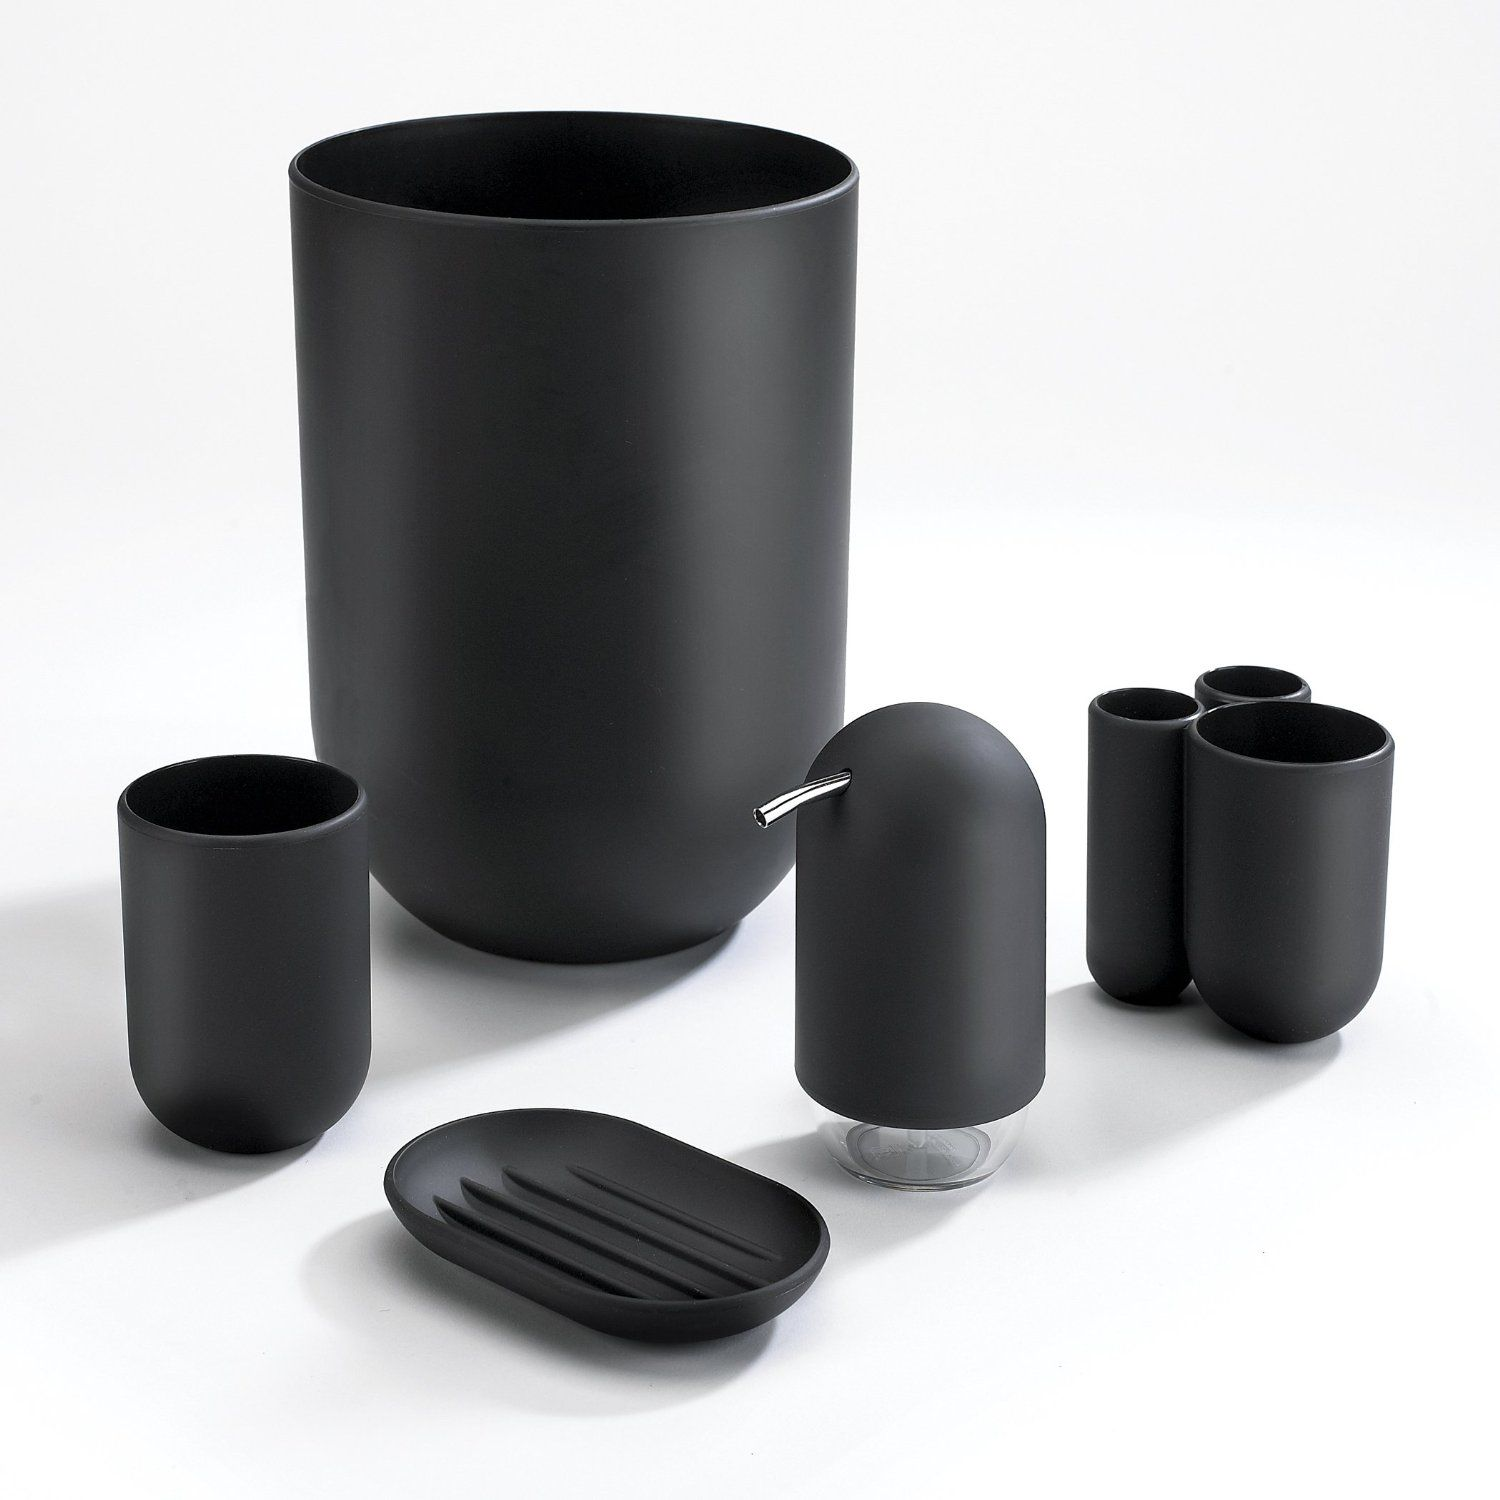 Amazon.com - Umbra Touch Bathroom Waste Can, Black